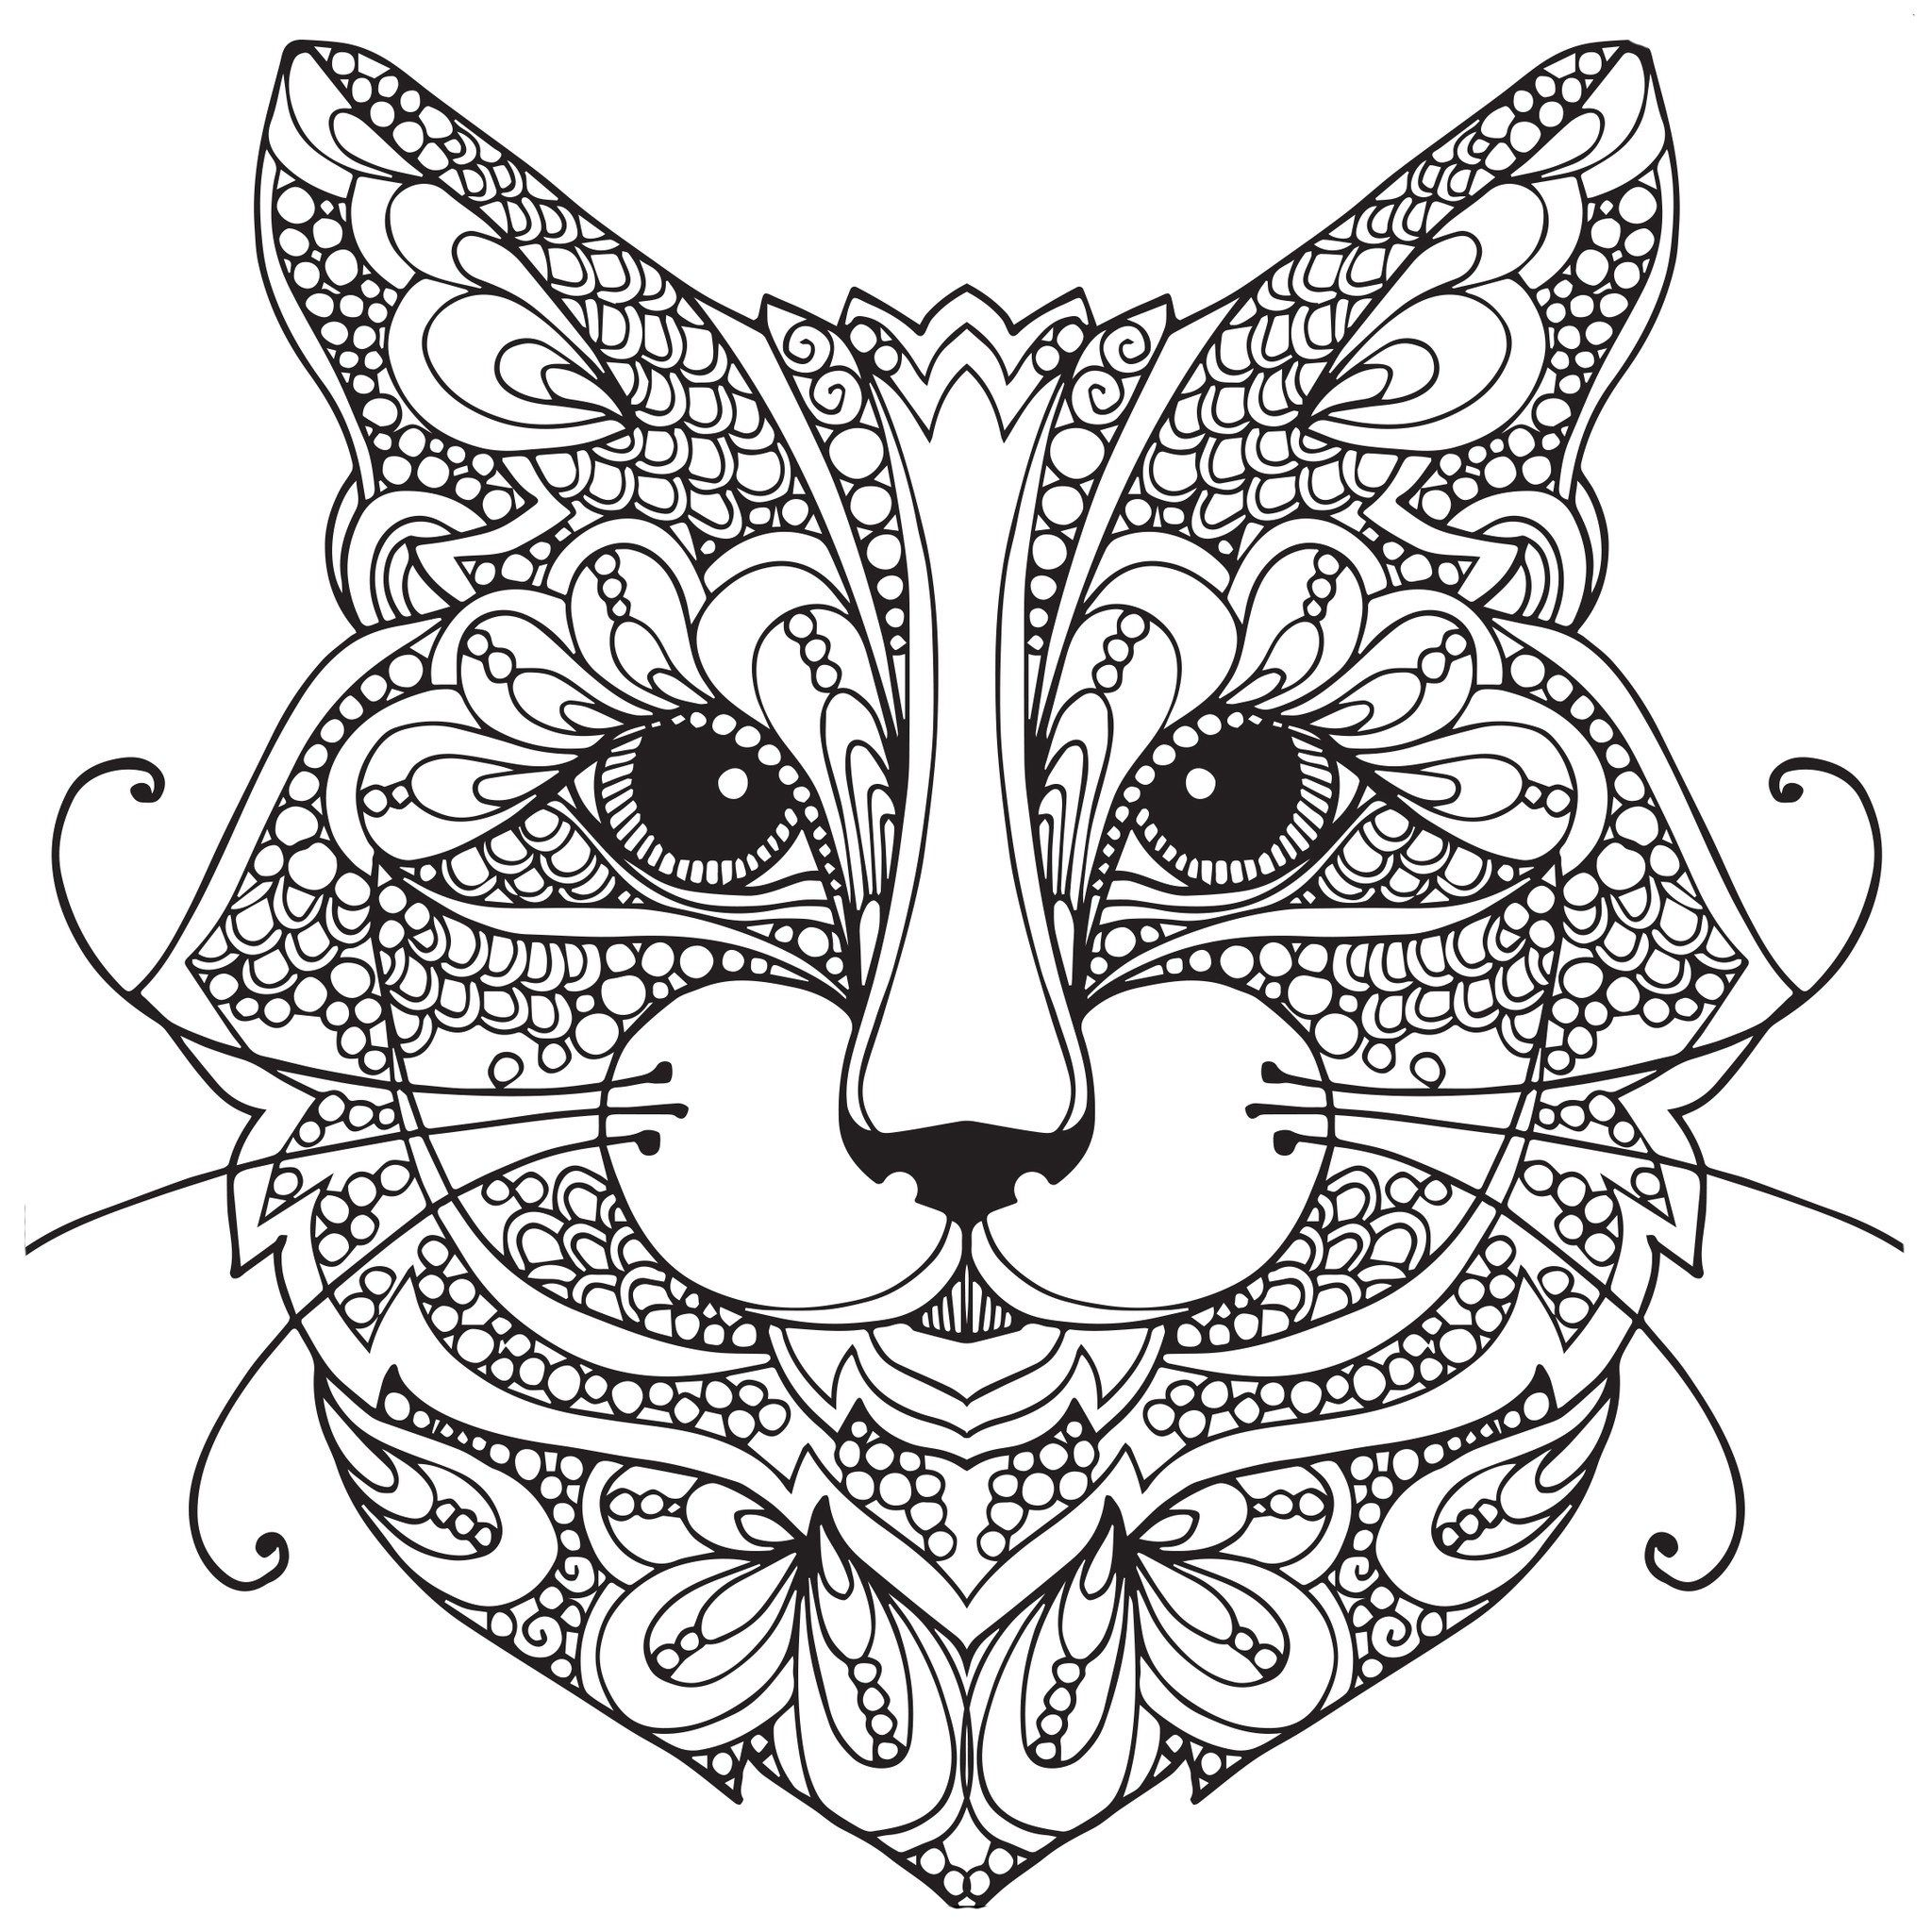 Adult Coloring Pages Cat 1 coloring pages Pinterest Adult